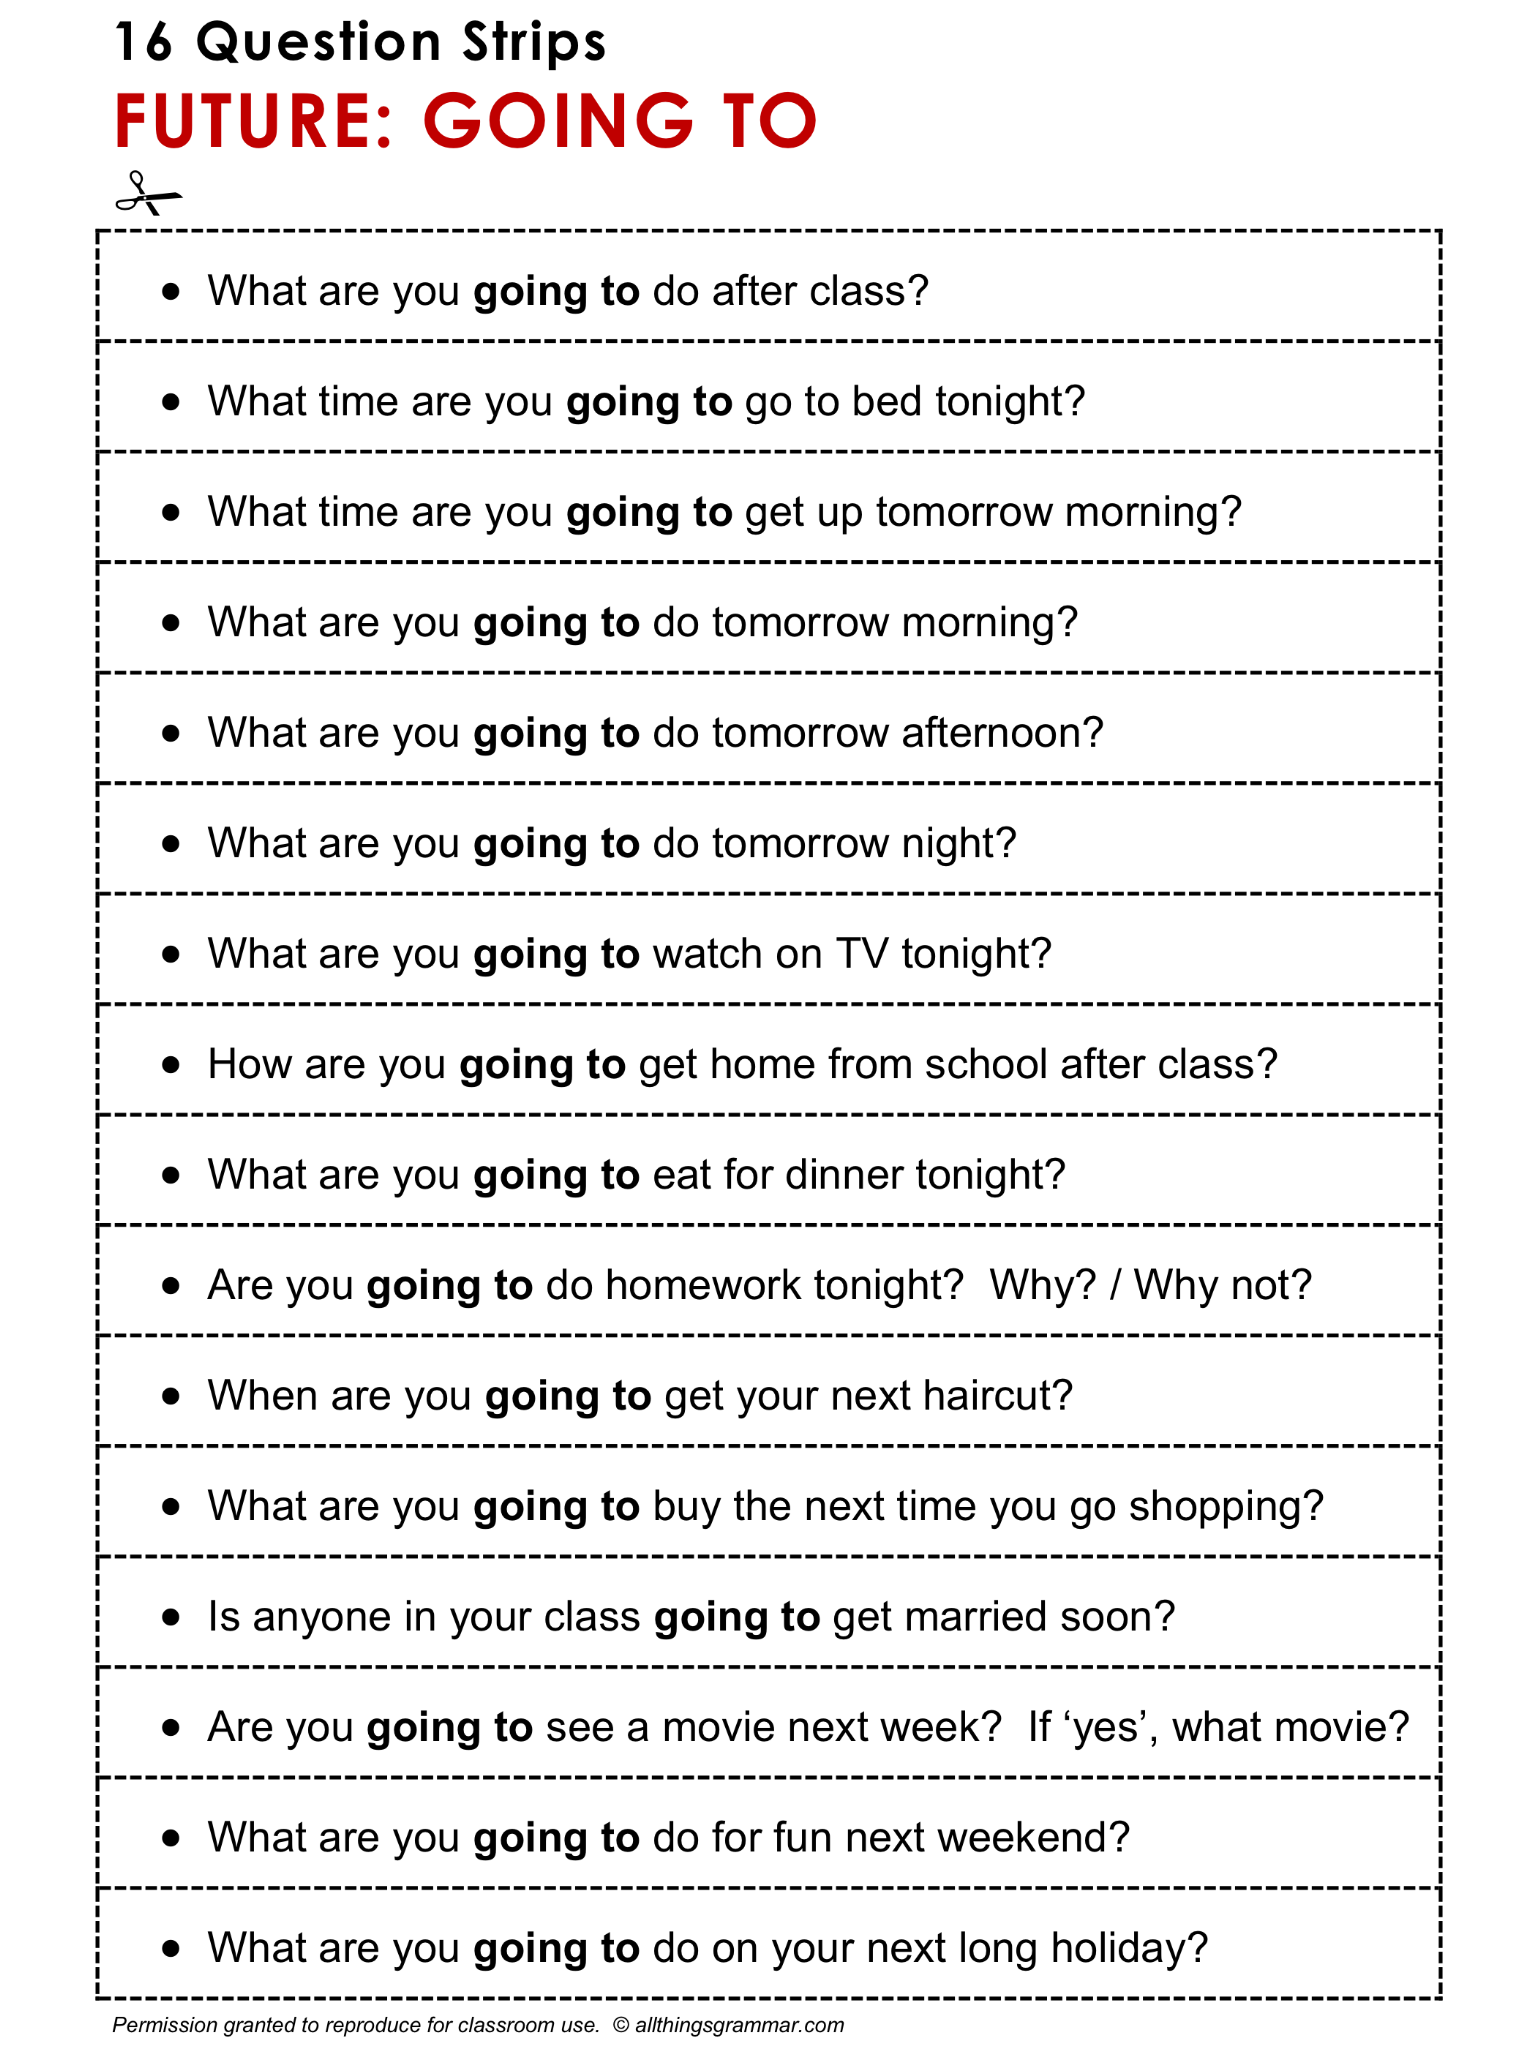 English Grammar Discussion Practice Future Going To 16